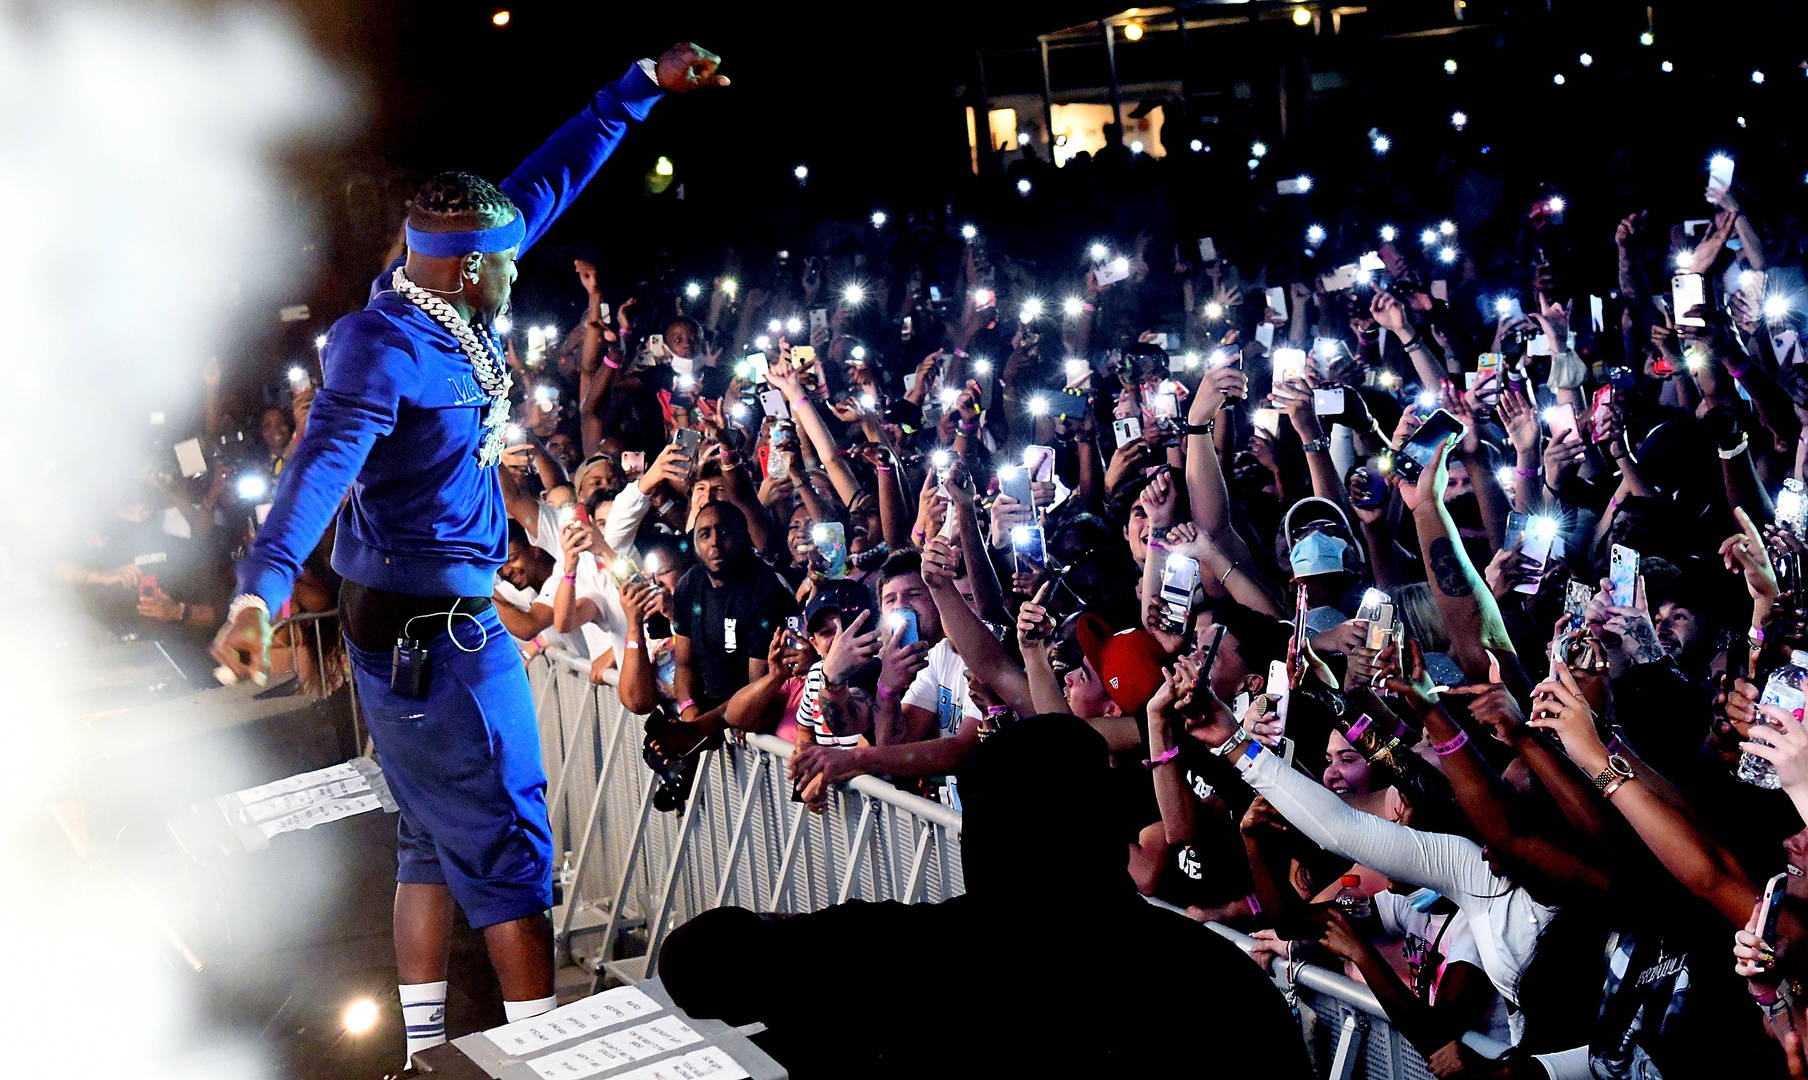 DaBaby performs during DaBaby + Friends Concert at Orlando Amphitheater on April 17, 2021 in Orlando, Florida.